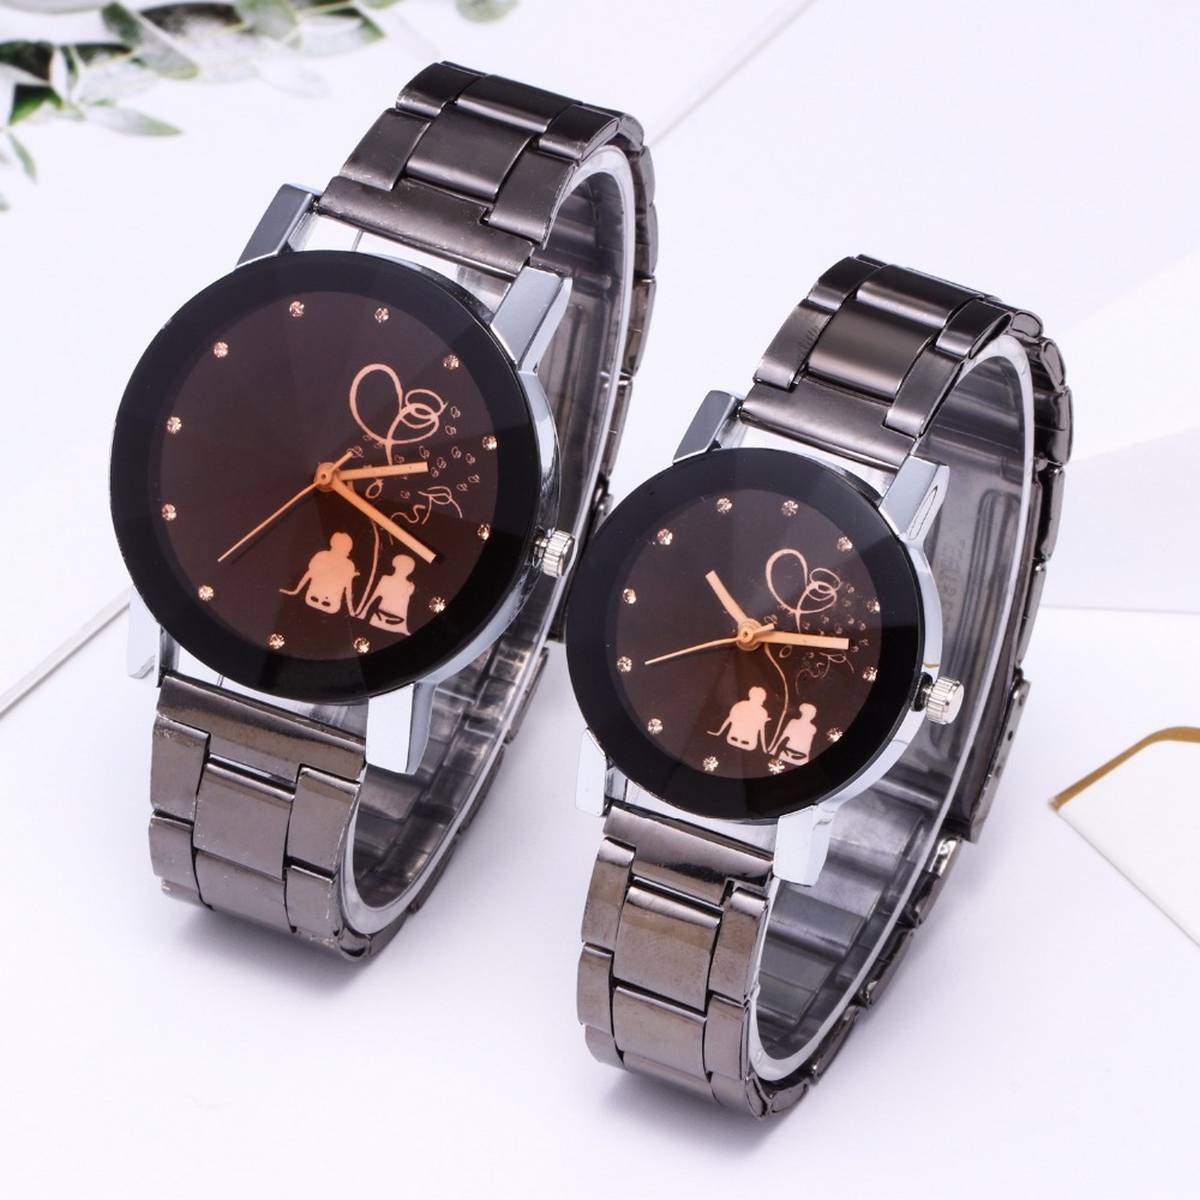 2Pcs/Set Couple Watches For Lovers With Box